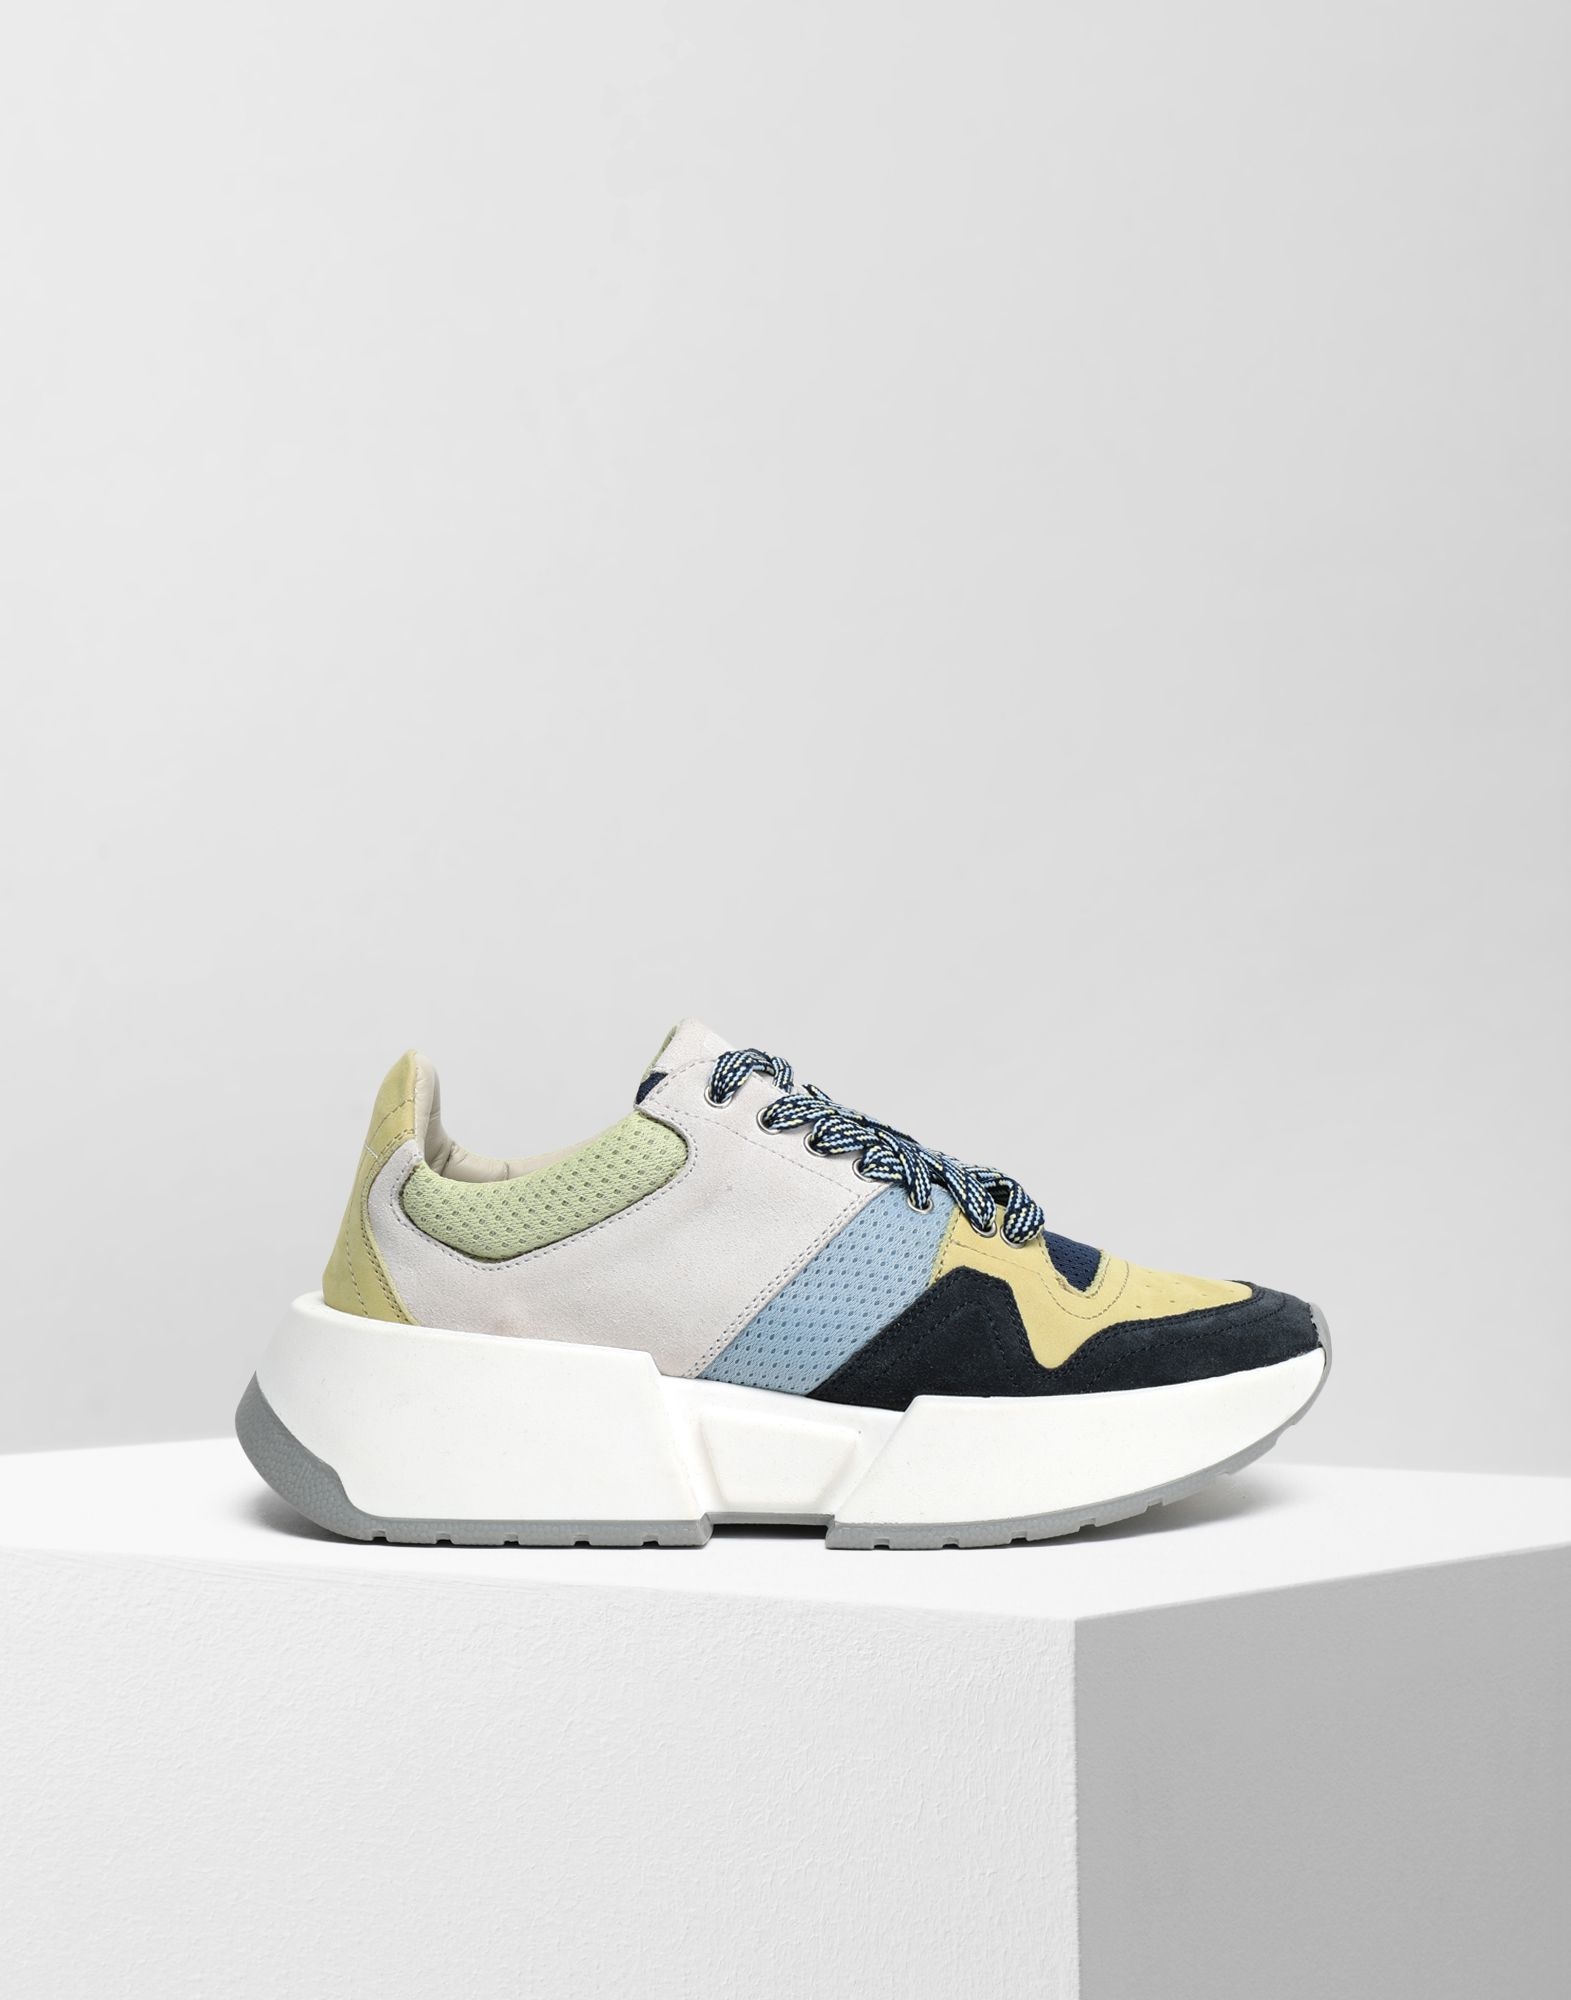 MM6 MAISON MARGIELA Colour block leather sneakers Sneakers Woman f